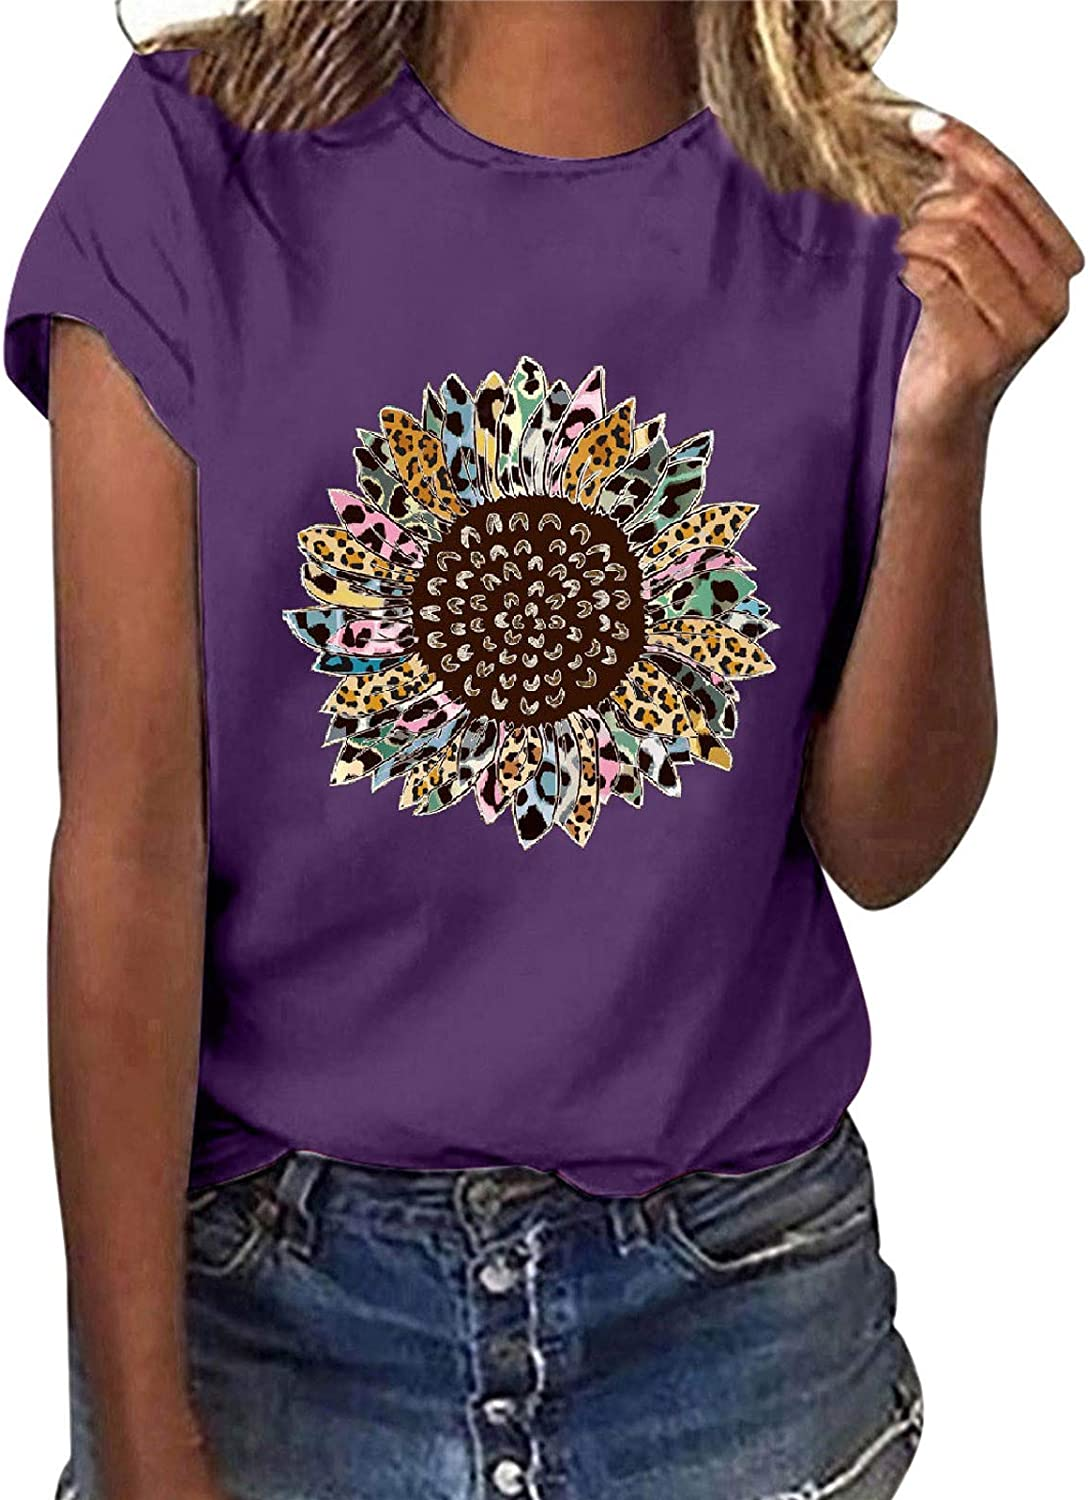 FABIURT Tshirts for Womens Leopard Printed Heart-Shaped Tops Summer Casual Blouse Short Sleeve T Shirts Athletic Tees